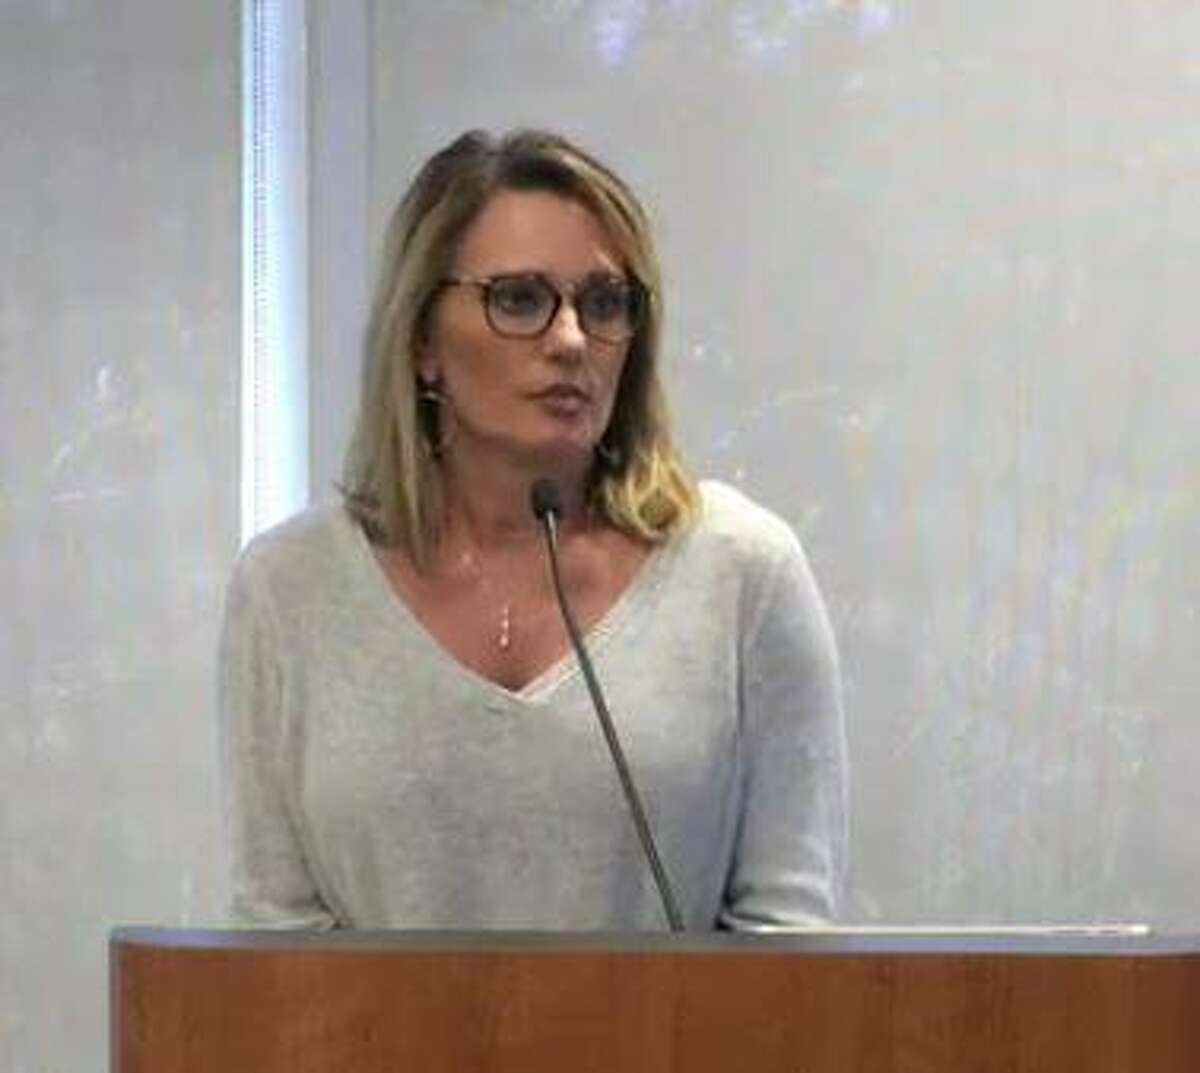 Local suicide awareness advocate Kim Hess - whose daughter Cassidy died by suicide - spoke to the township board in early 2019 about the problem and how county leaders can help stop the trend and intervene when people need mental health care. On Feb. 26, 2020, during an update on the issue, Montgomery County Precinct 1 Justice of the Peace Judge Wayne L. Mack cited the work of Hess and scores of others across the county for making the Montgomery County Behavioral Health and Suicide Prevention Task Force a succsss.